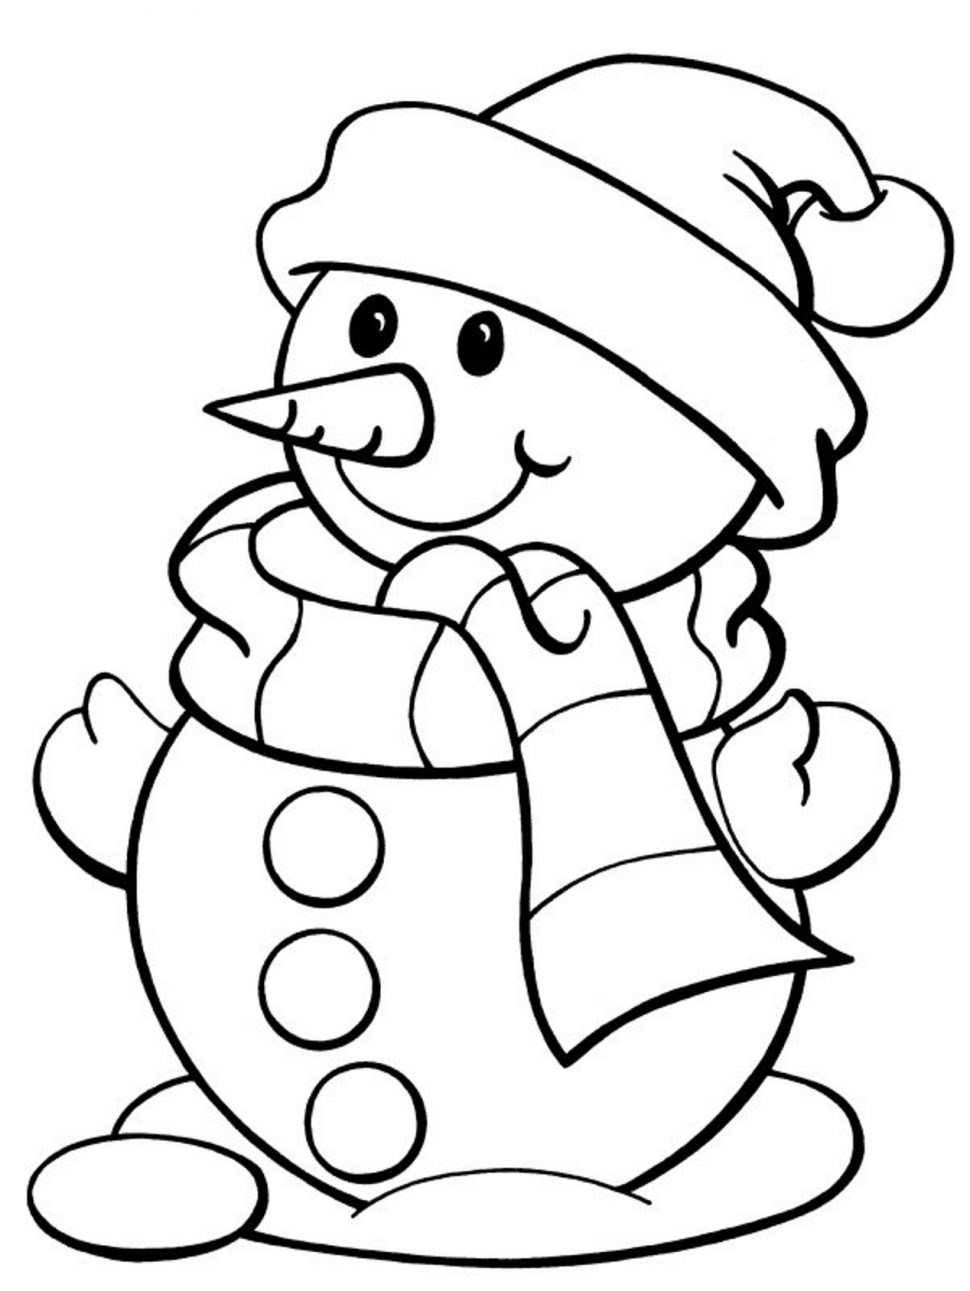 970x1291 Big Hero 6 Coloring Pages Wecoloringpage Inside In Coloring Page